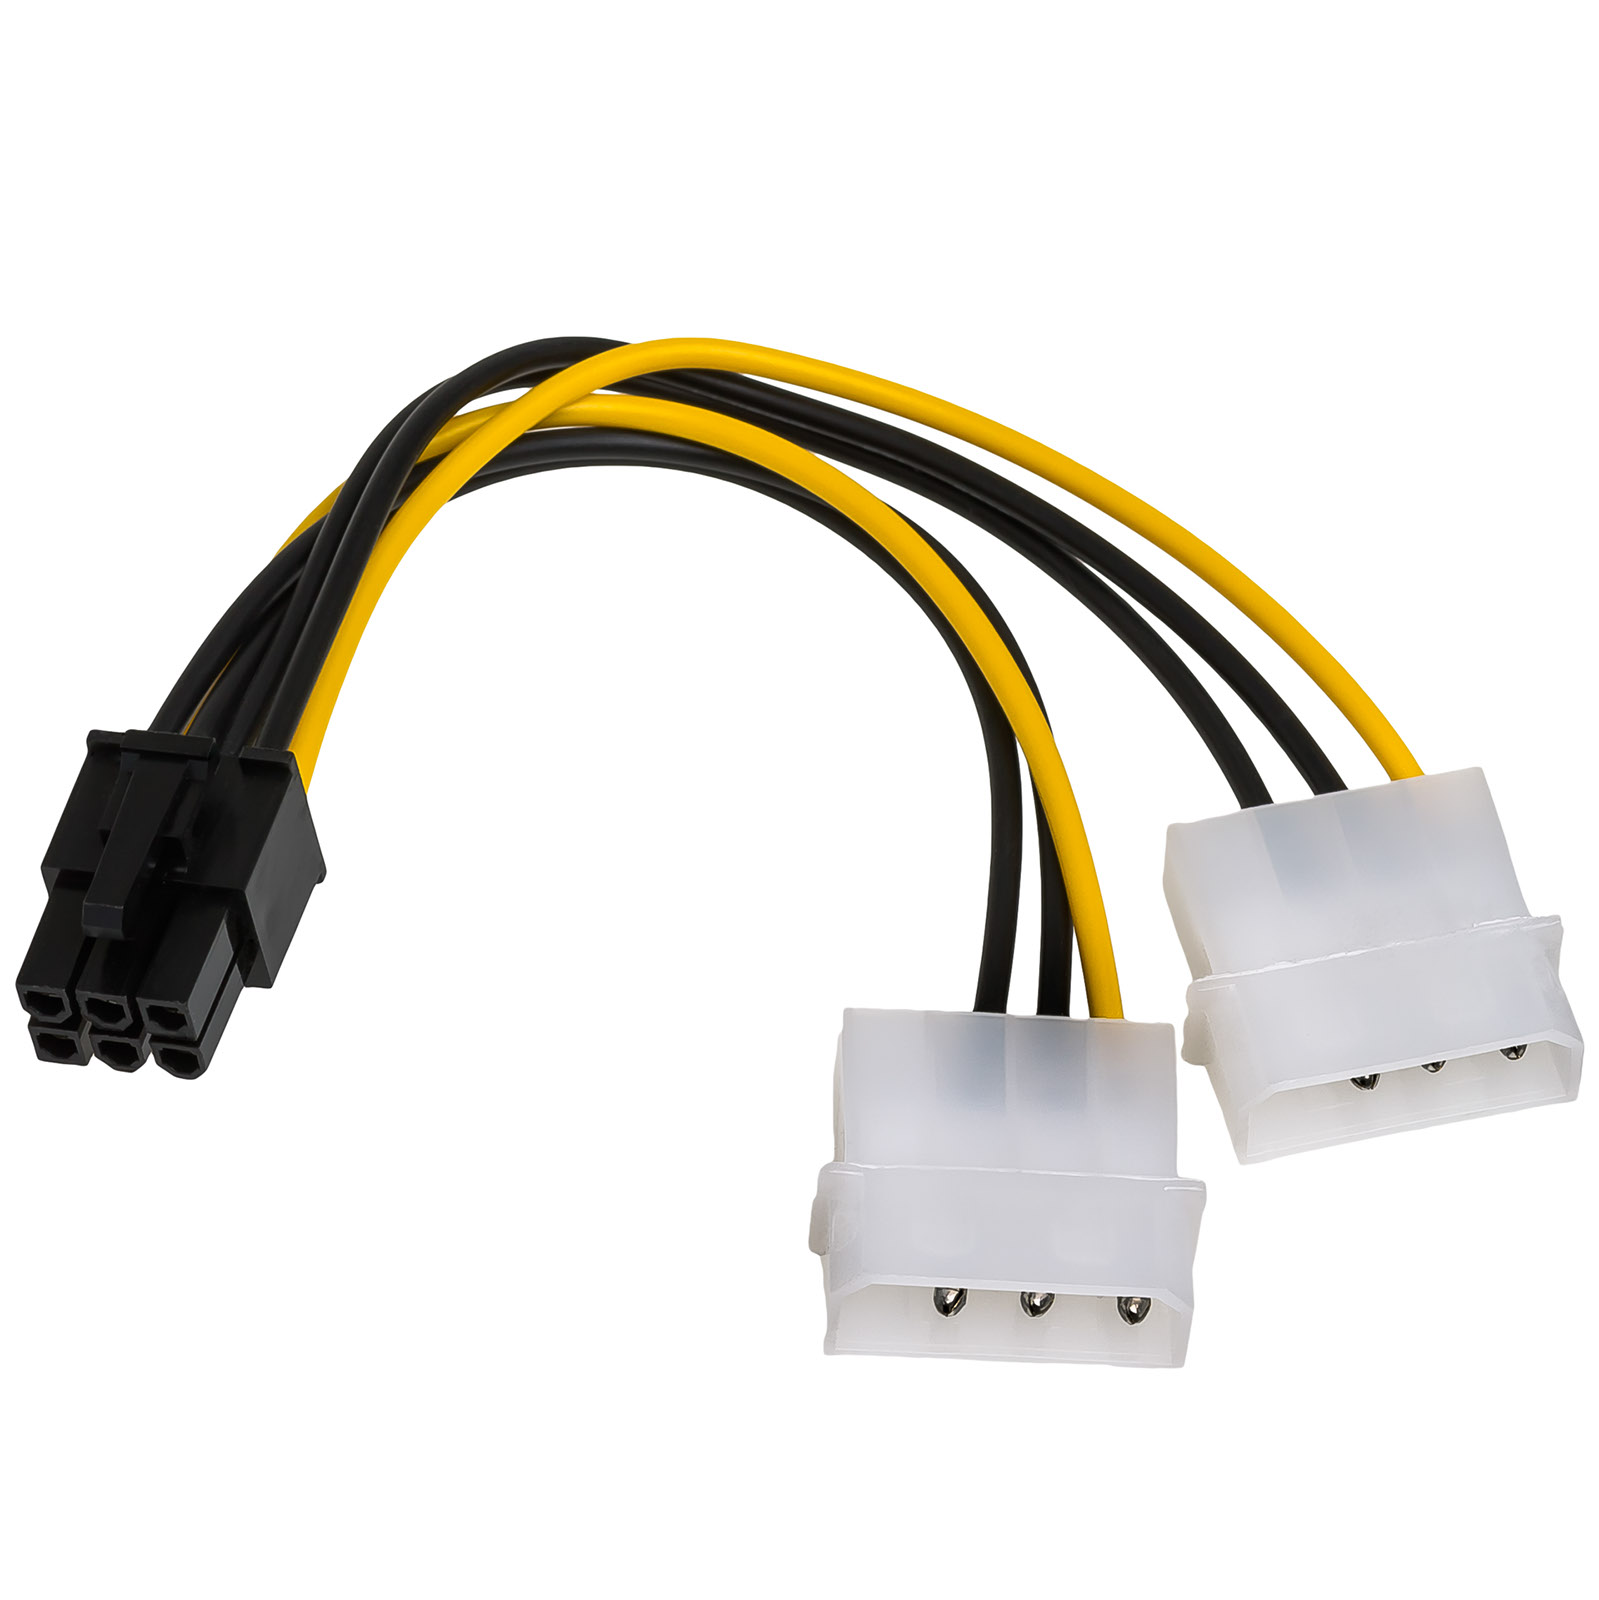 main_image Адаптер 2x Molex / PCI-Express 6-контактный АК-CA-13